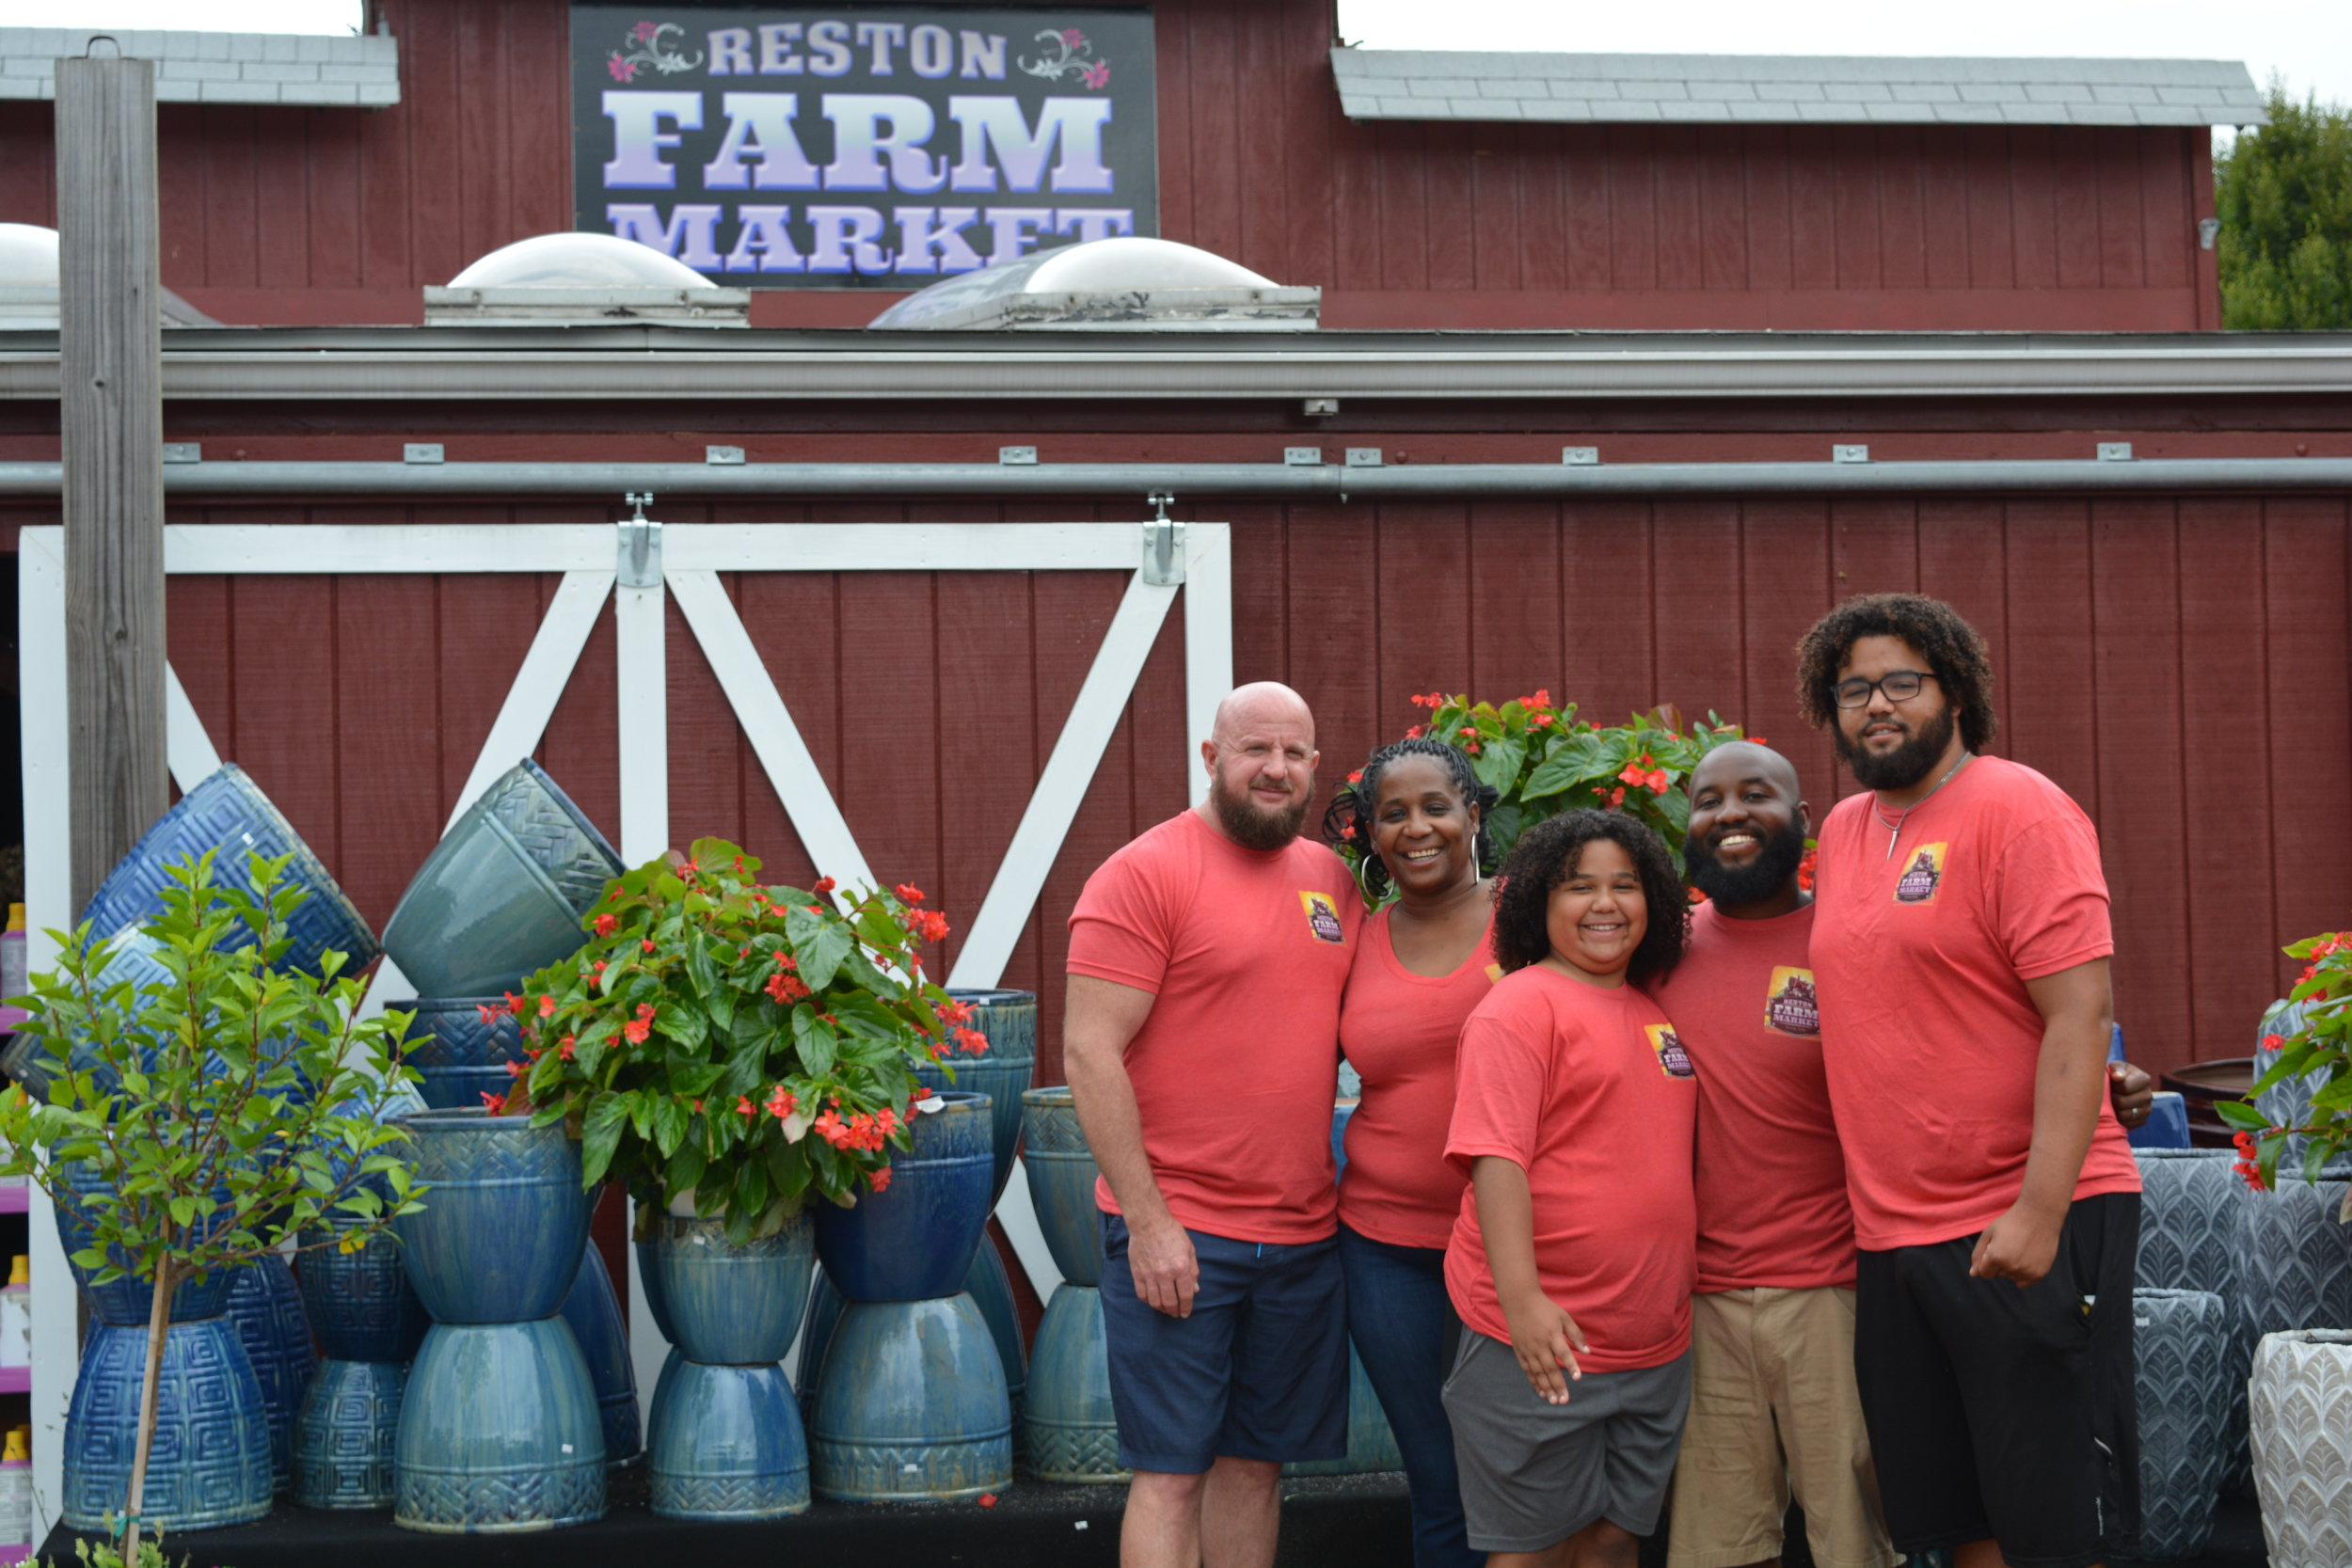 reston-farm-market-team.JPG